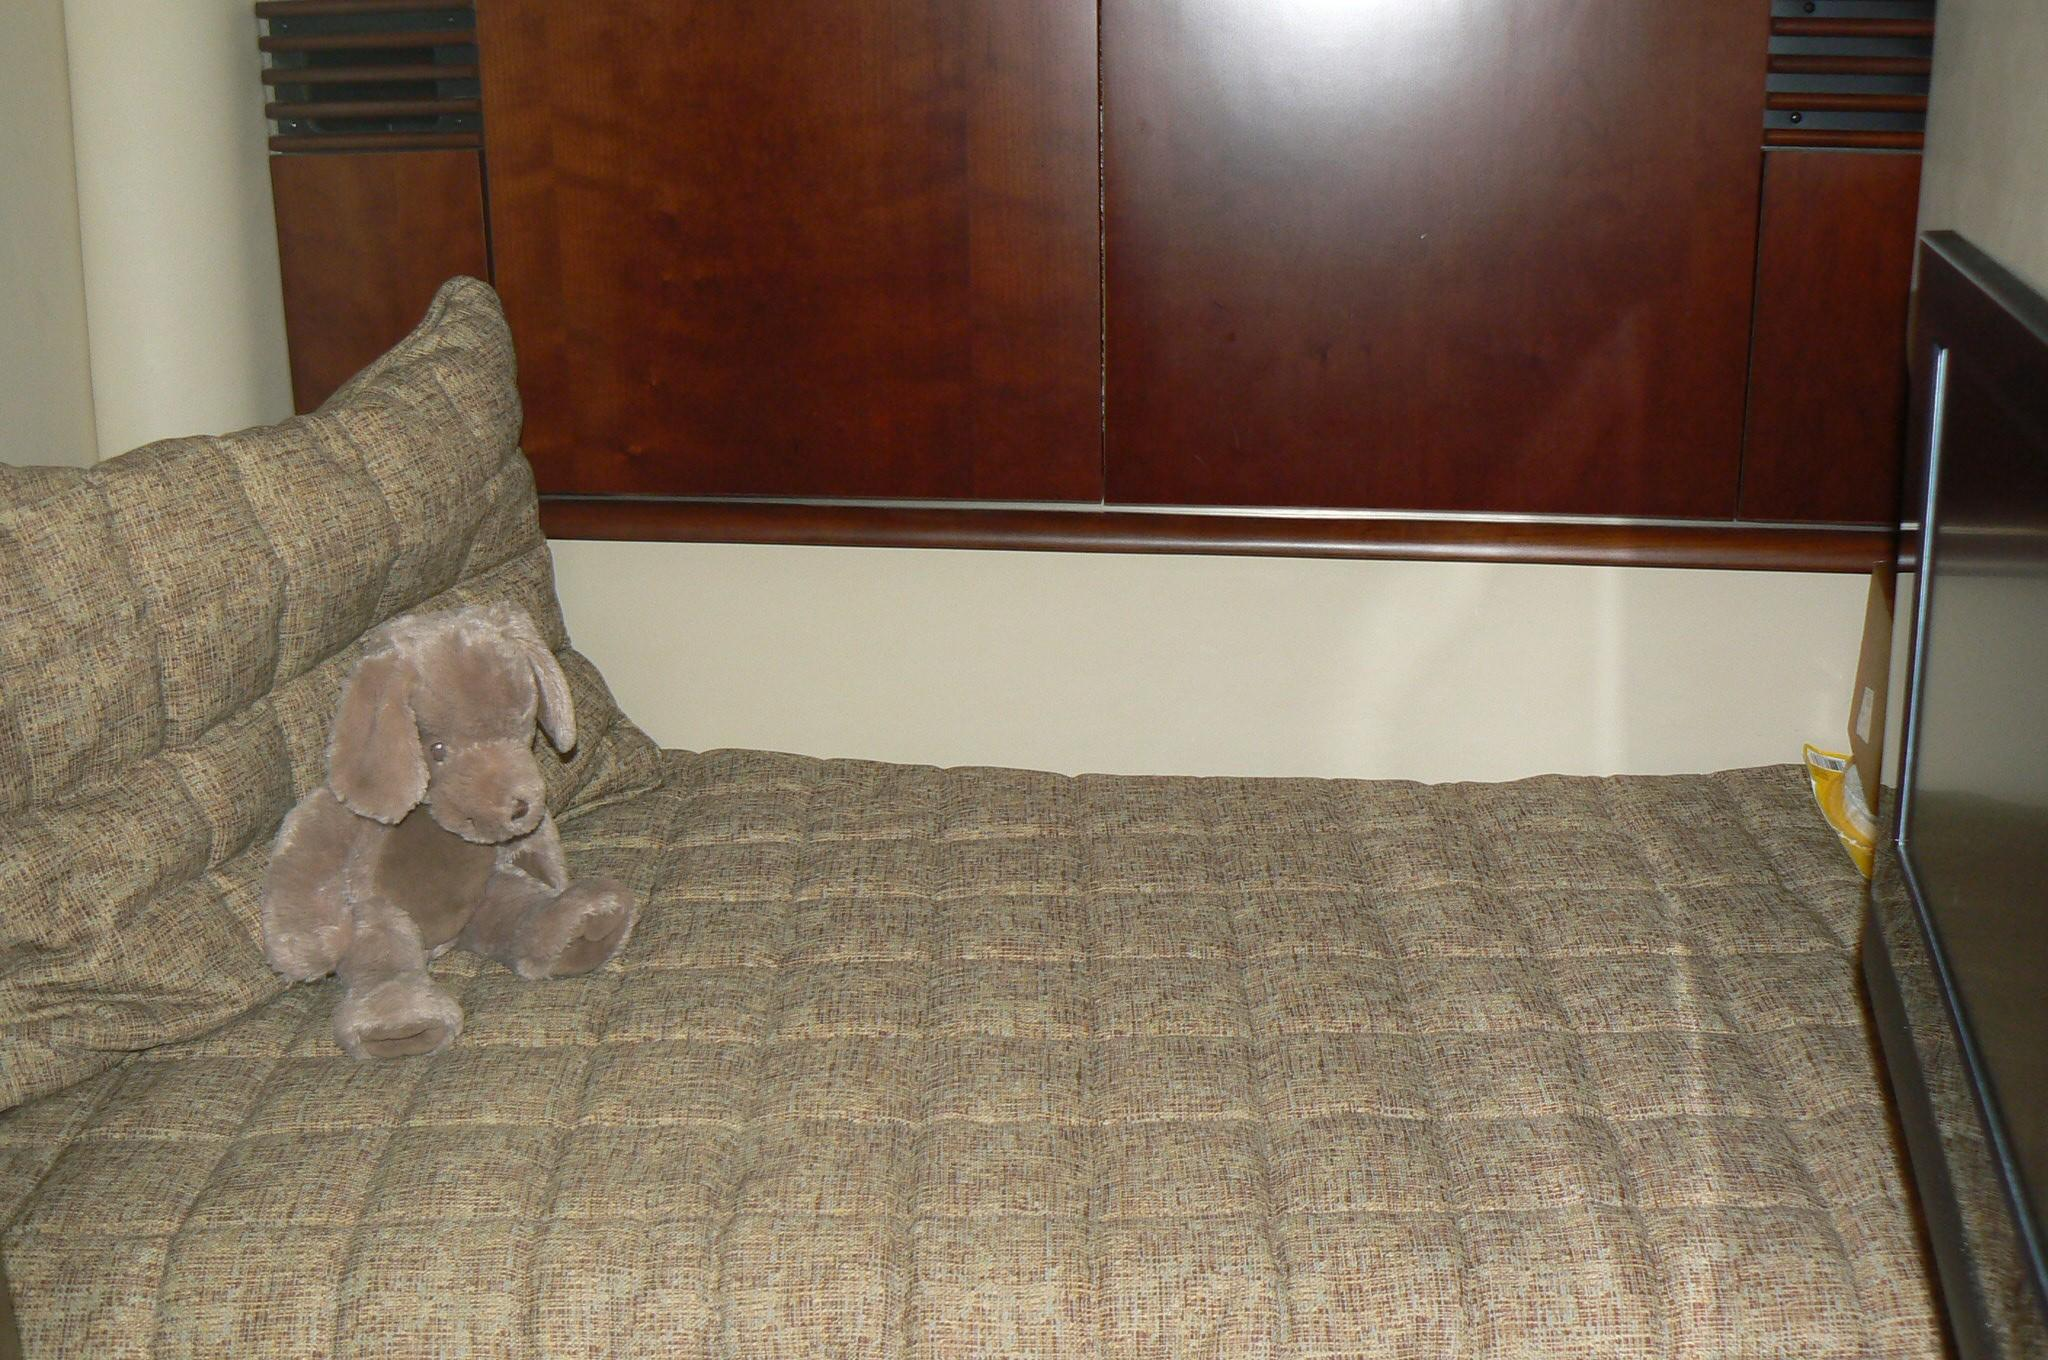 3rd Bunk Stateroom